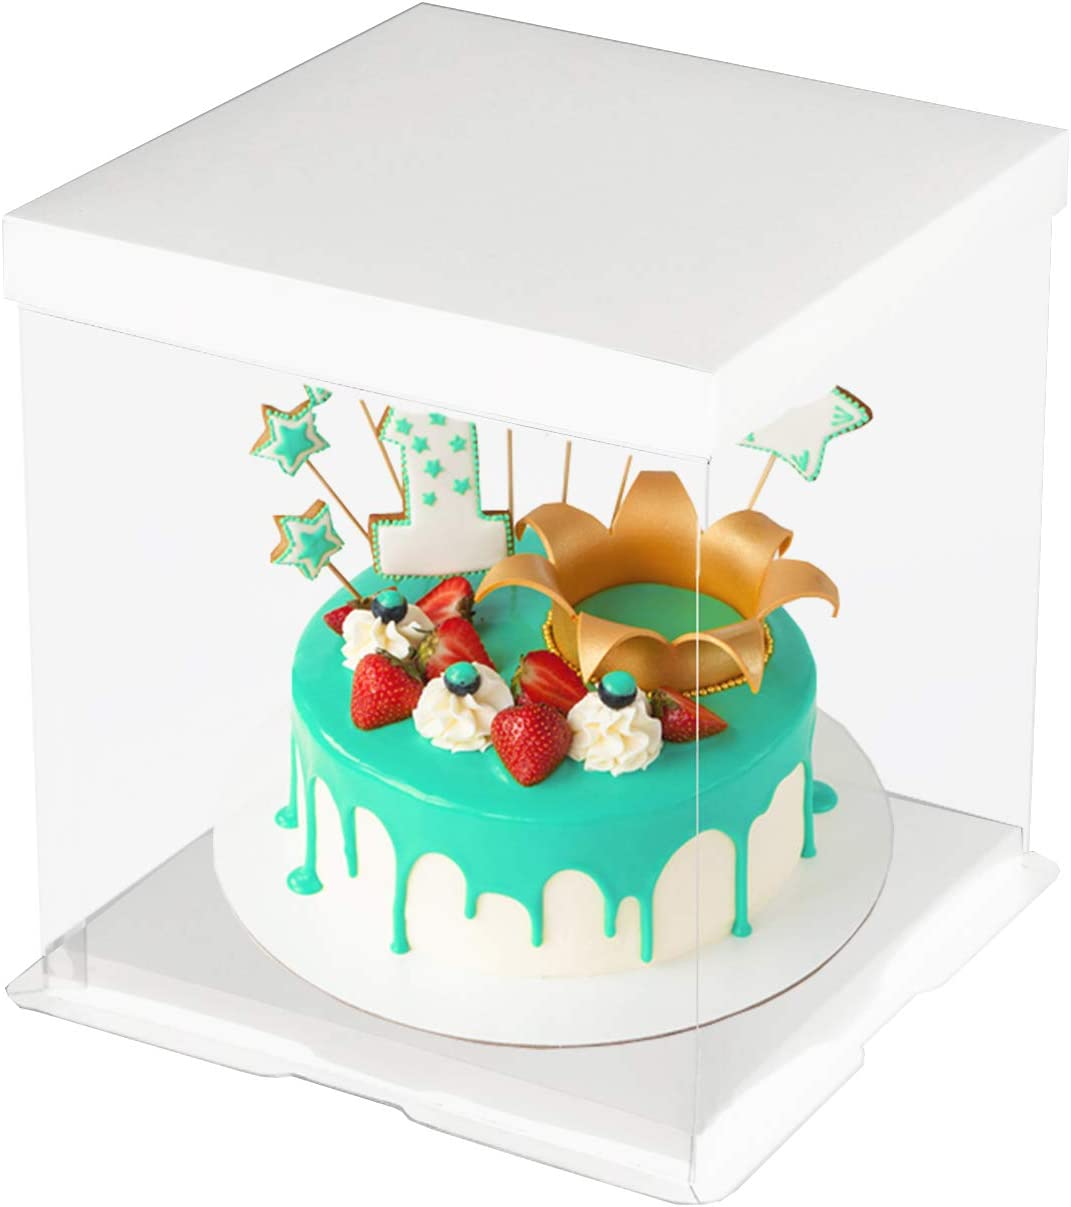 Miraculous Amazon Com Codohi 6 Packs Clear Plastic Birthday Cake Carrier Funny Birthday Cards Online Fluifree Goldxyz